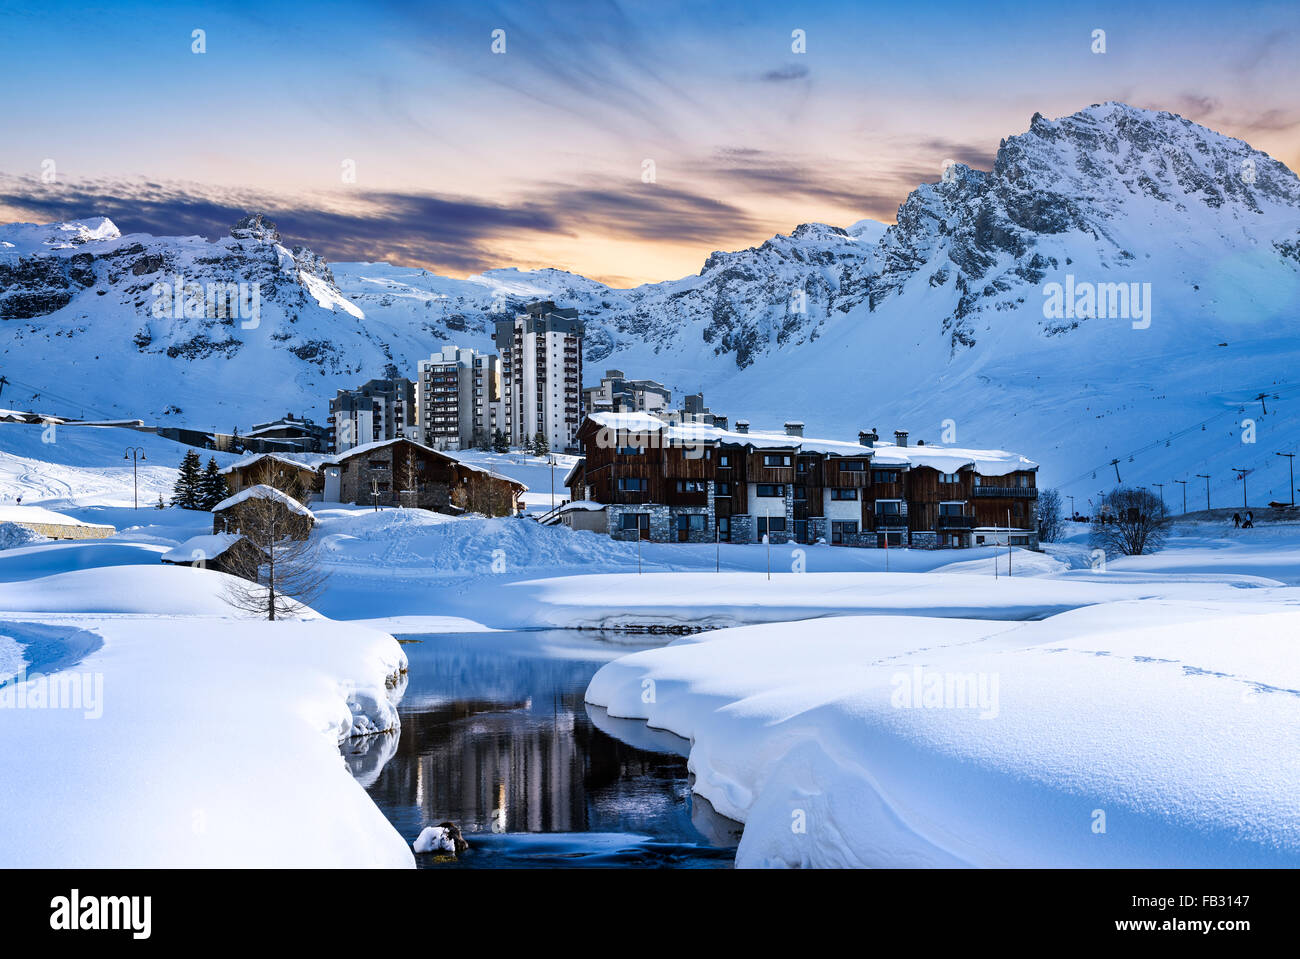 Evening landscape and ski resort in French Alps,Tignes, France - Stock Image